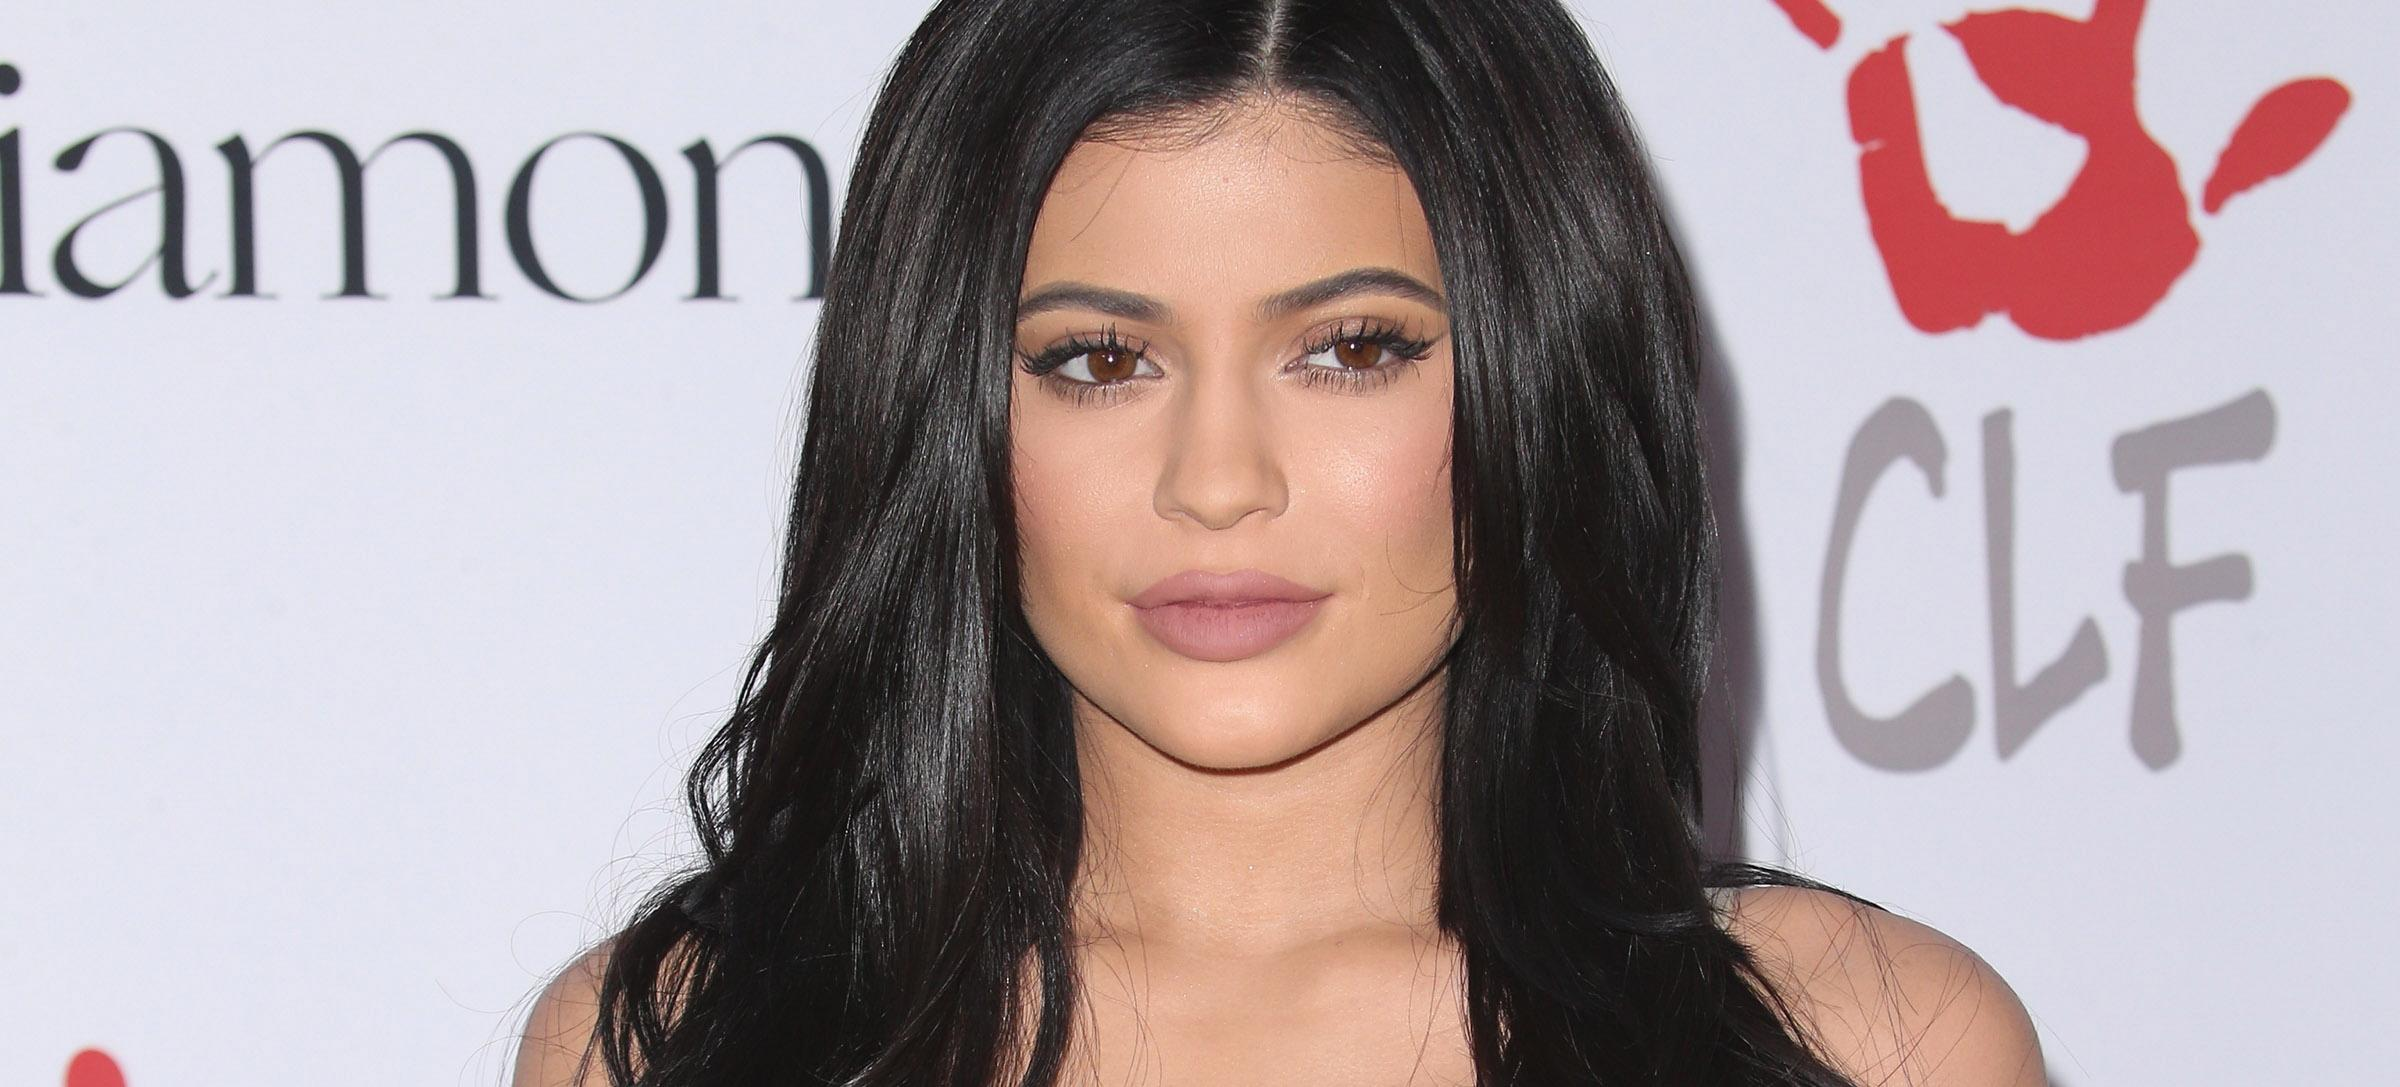 Kylie Jenner Reveals The Rest Of Her New Lip Kit Colors